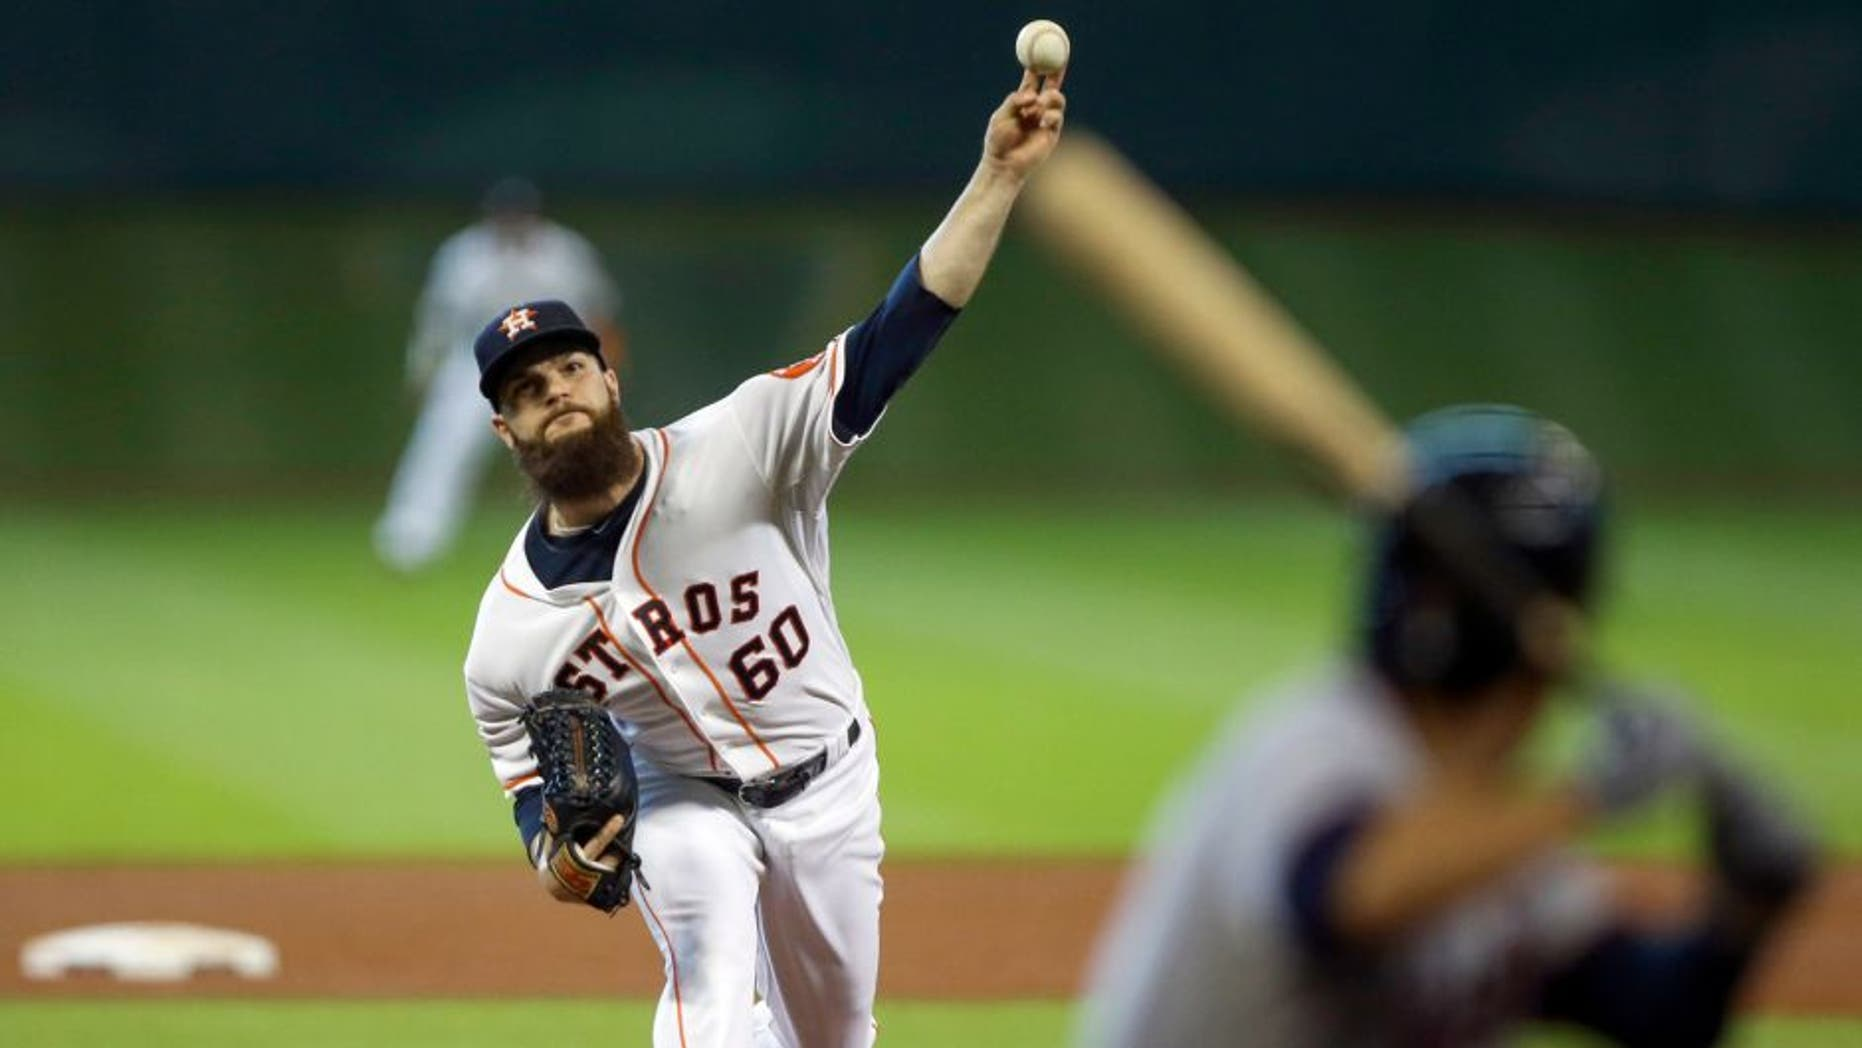 Sep 6, 2015; Houston, TX, USA; Houston Astros starting pitcher Dallas Keuchel (60) delivers a pitch during the fifth inning against the Minnesota Twins at Minute Maid Park. Mandatory Credit: Troy Taormina-USA TODAY Sports